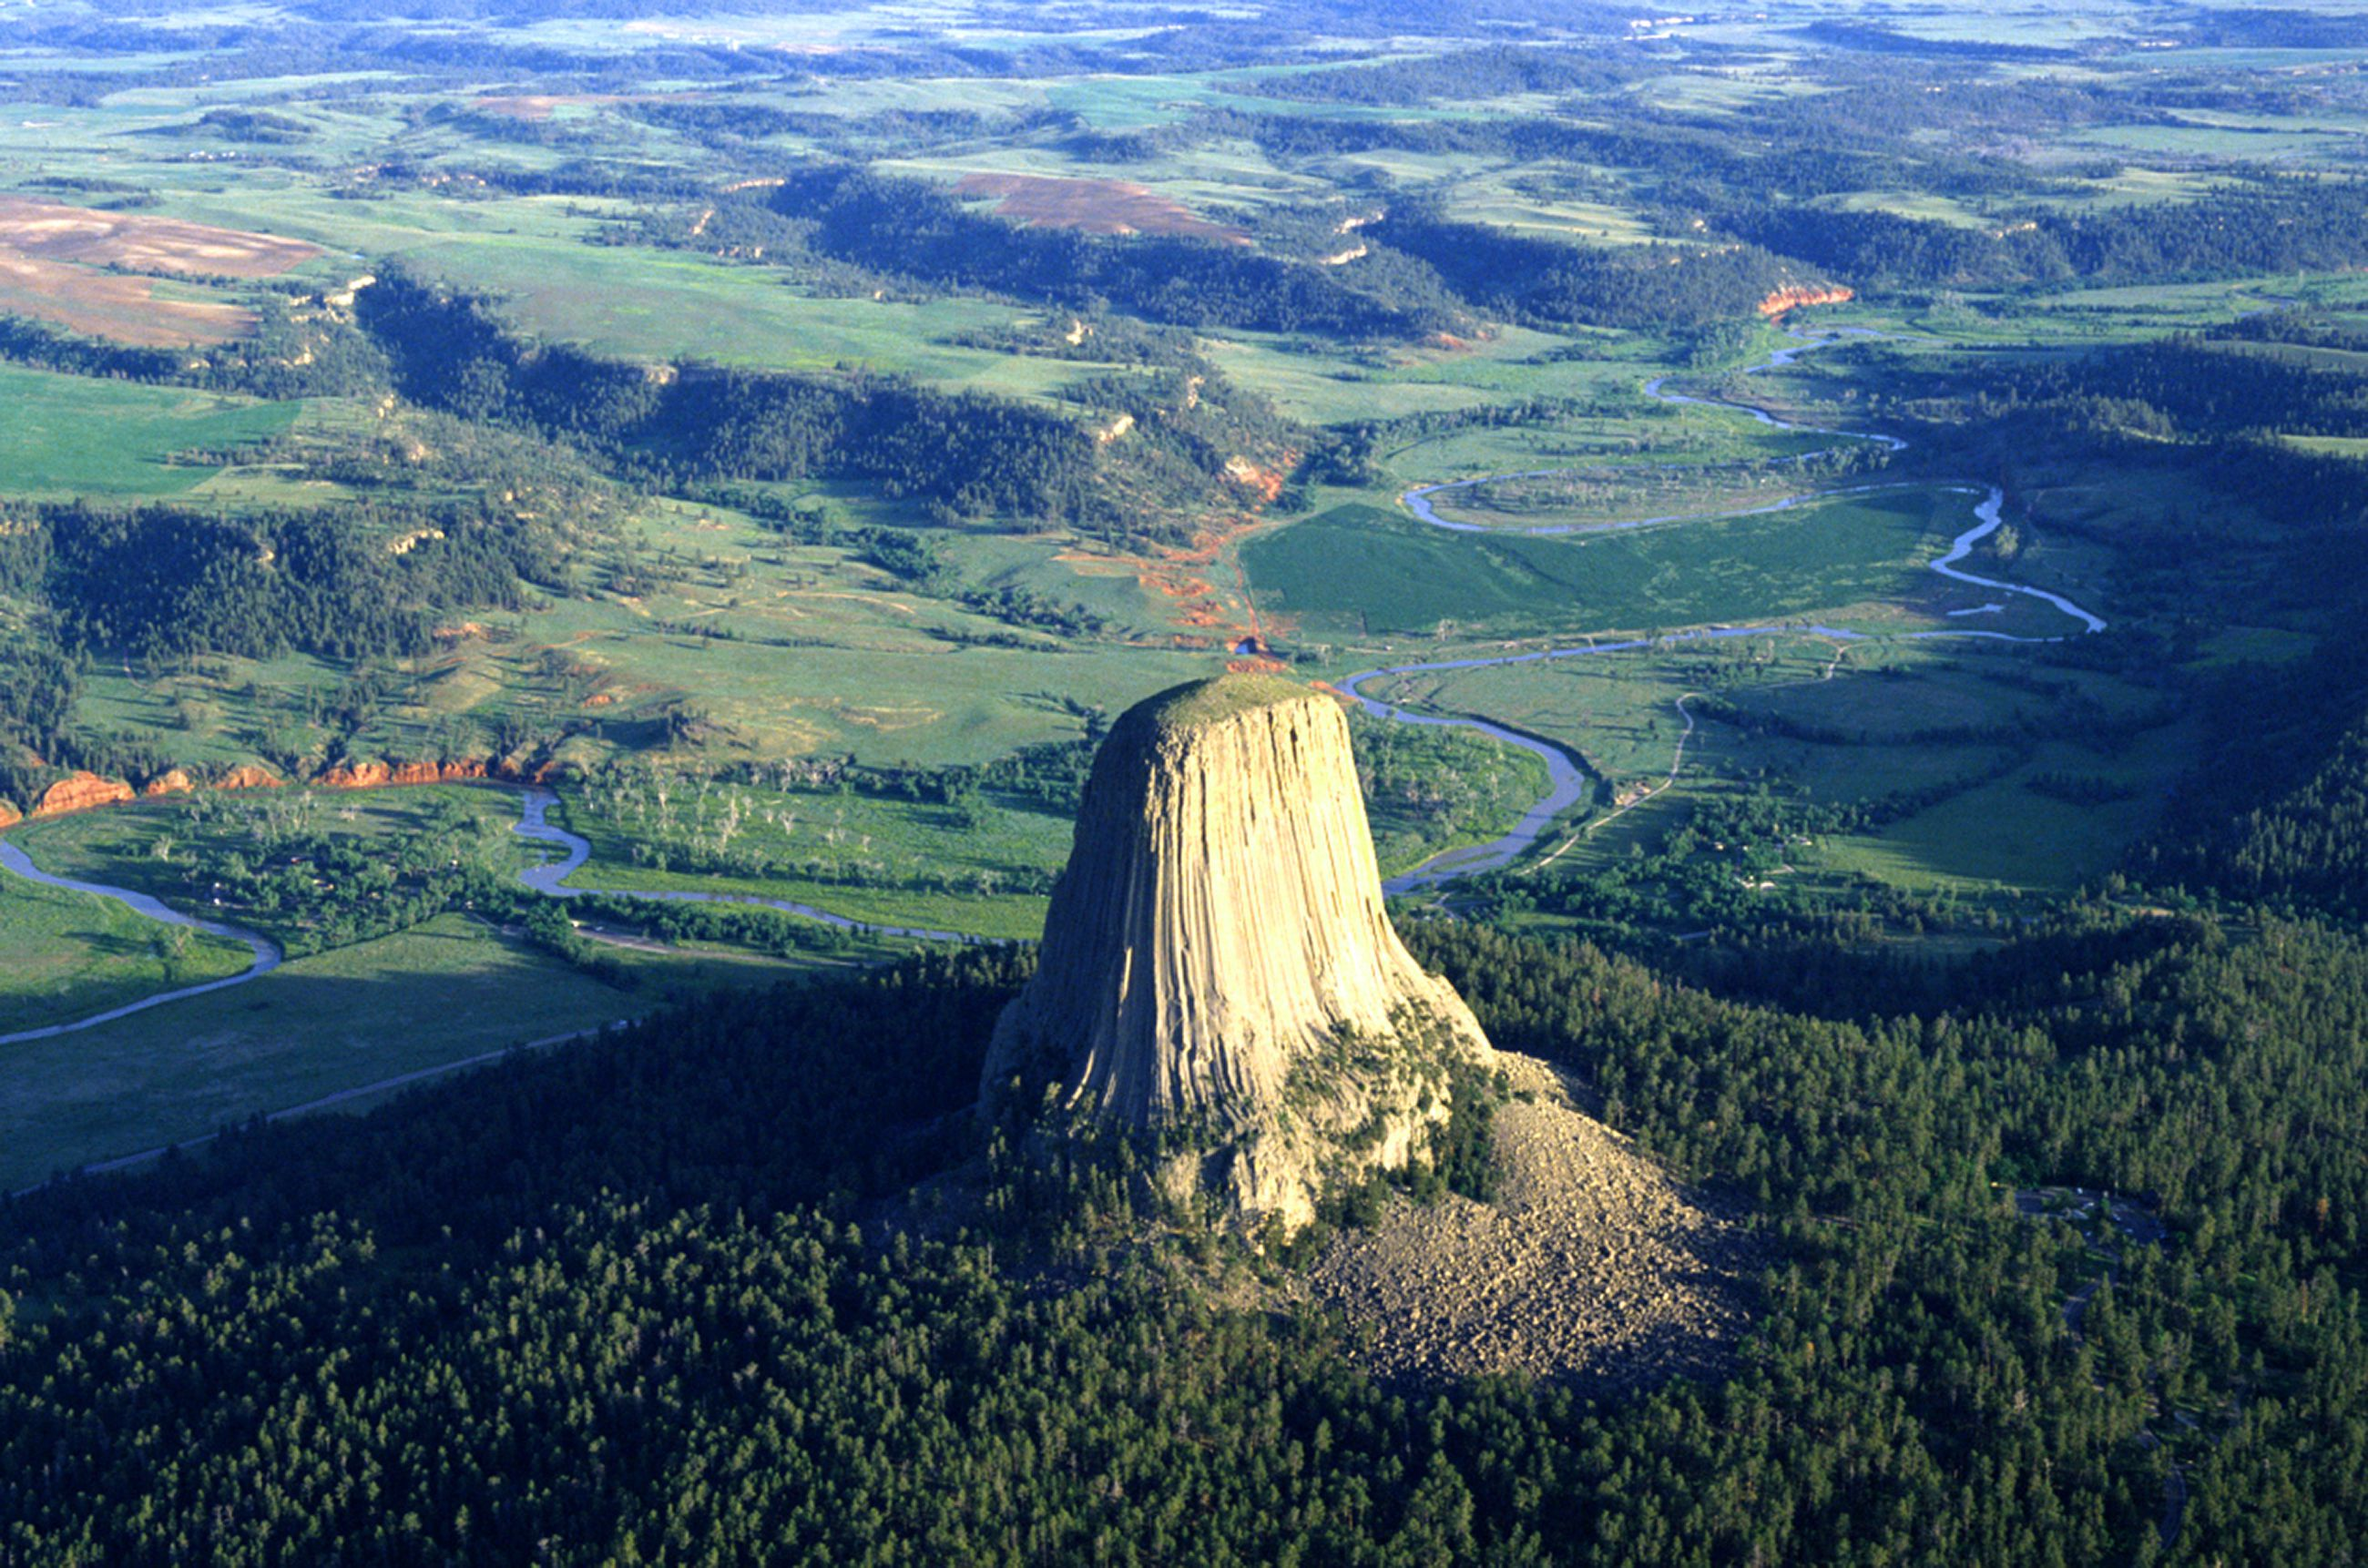 devilstowerairWY-56a3fc273df78cf772803a61 Map With All Of The Major Attractions United States on